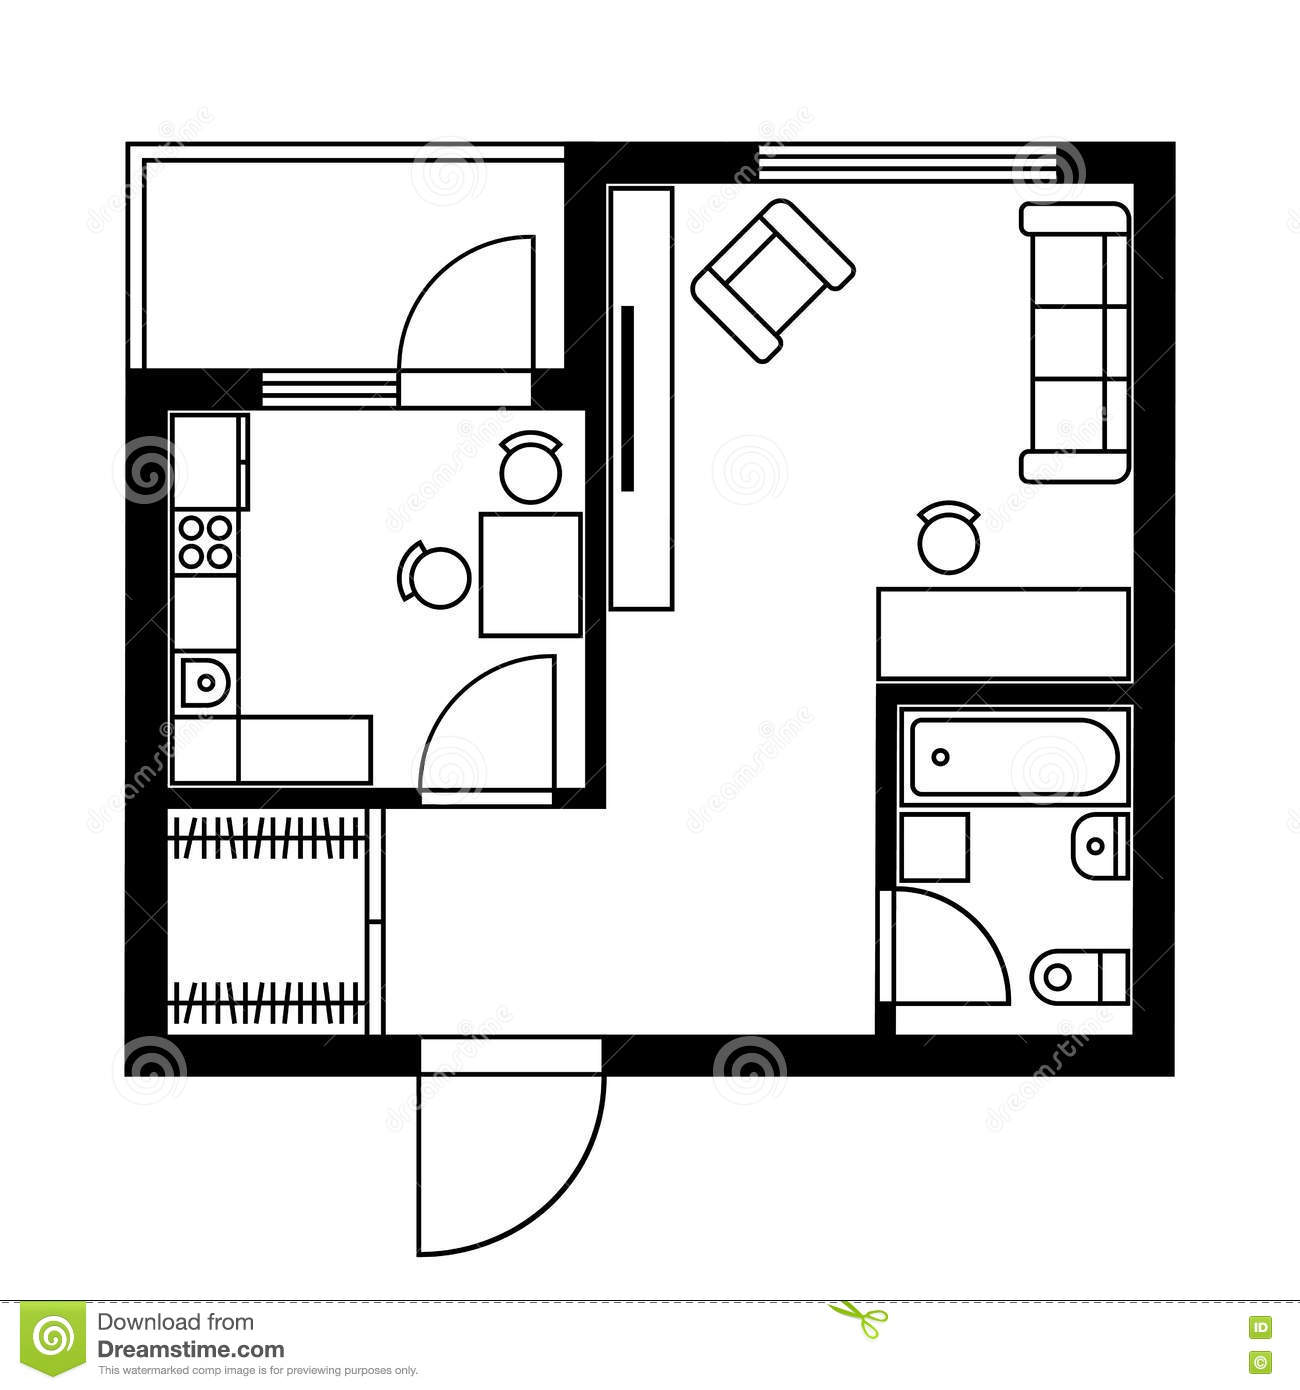 Staircase And Stairs Design And Construction together with Bathroom Floor Planner furthermore Affordable Small Houses moreover Architecture Paintings Abstract in addition 2905 Square Feet 4 Bedrooms 2 Batrooms 2 Parking Space On 2 Levels House Plan 2938. on simple bathroom floor plans